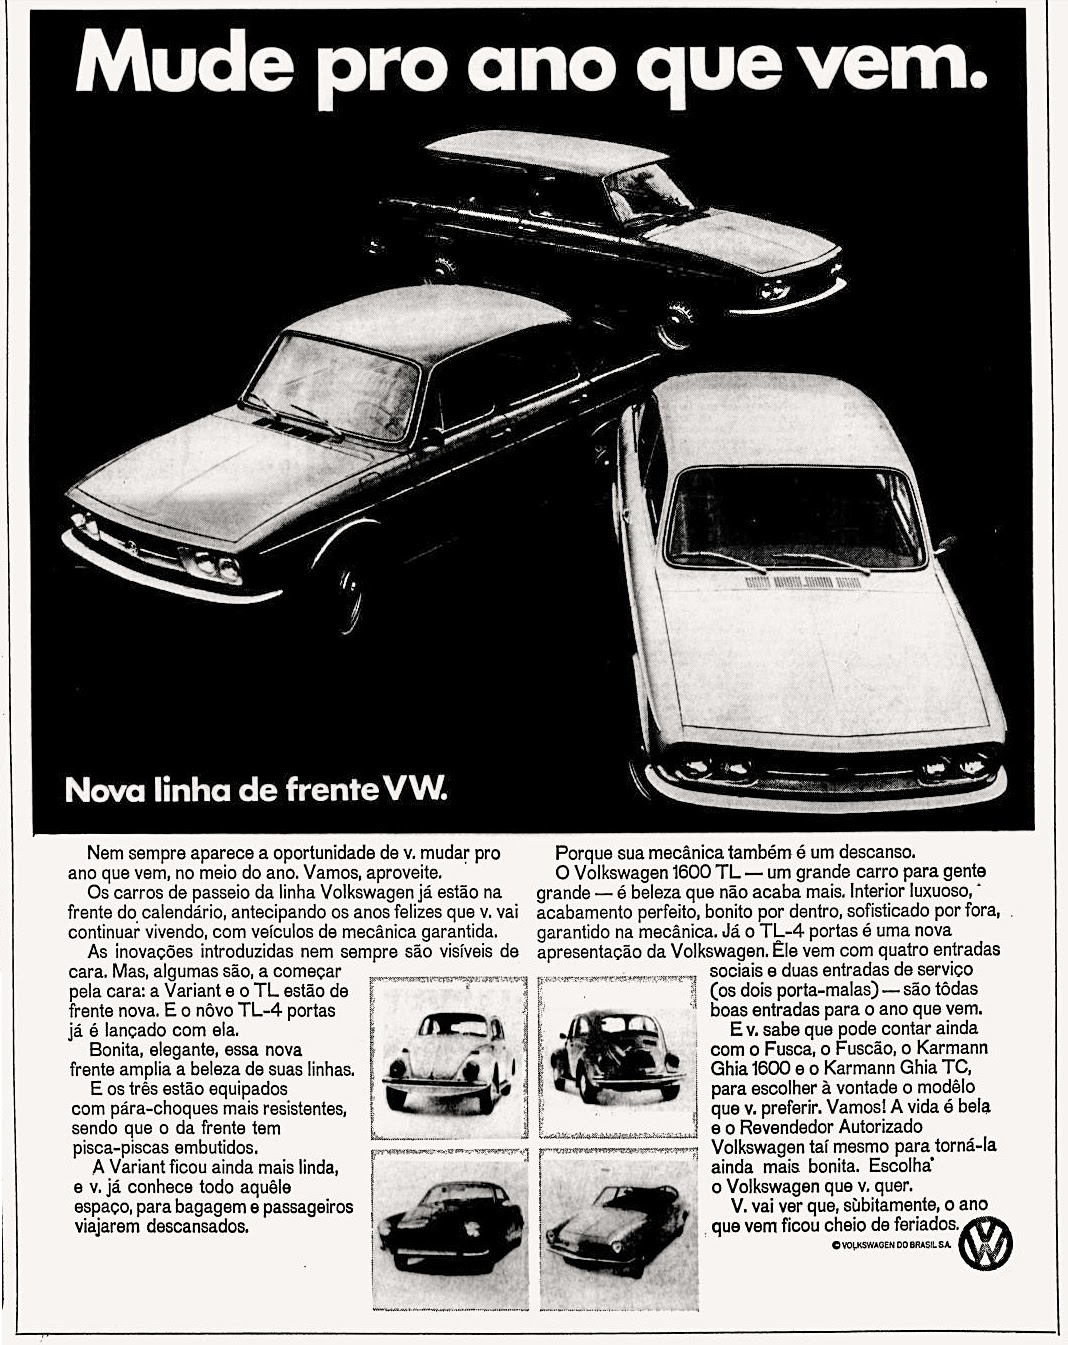 Volks anos 70; 1971; brazilian advertising cars in the 70s; os anos 70; história da década de 70; Brazil in the 70s; propaganda carros anos 70; Oswaldo Hernandez;